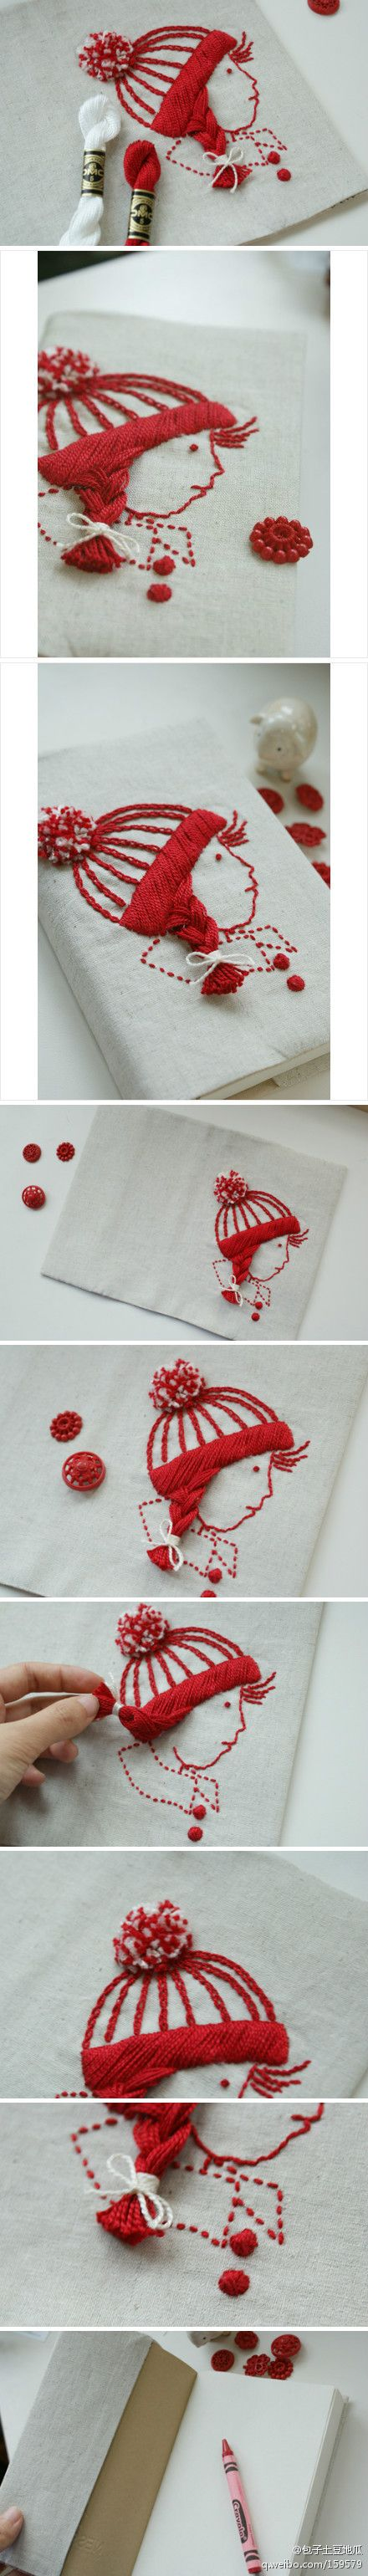 Embroidery notebook cover